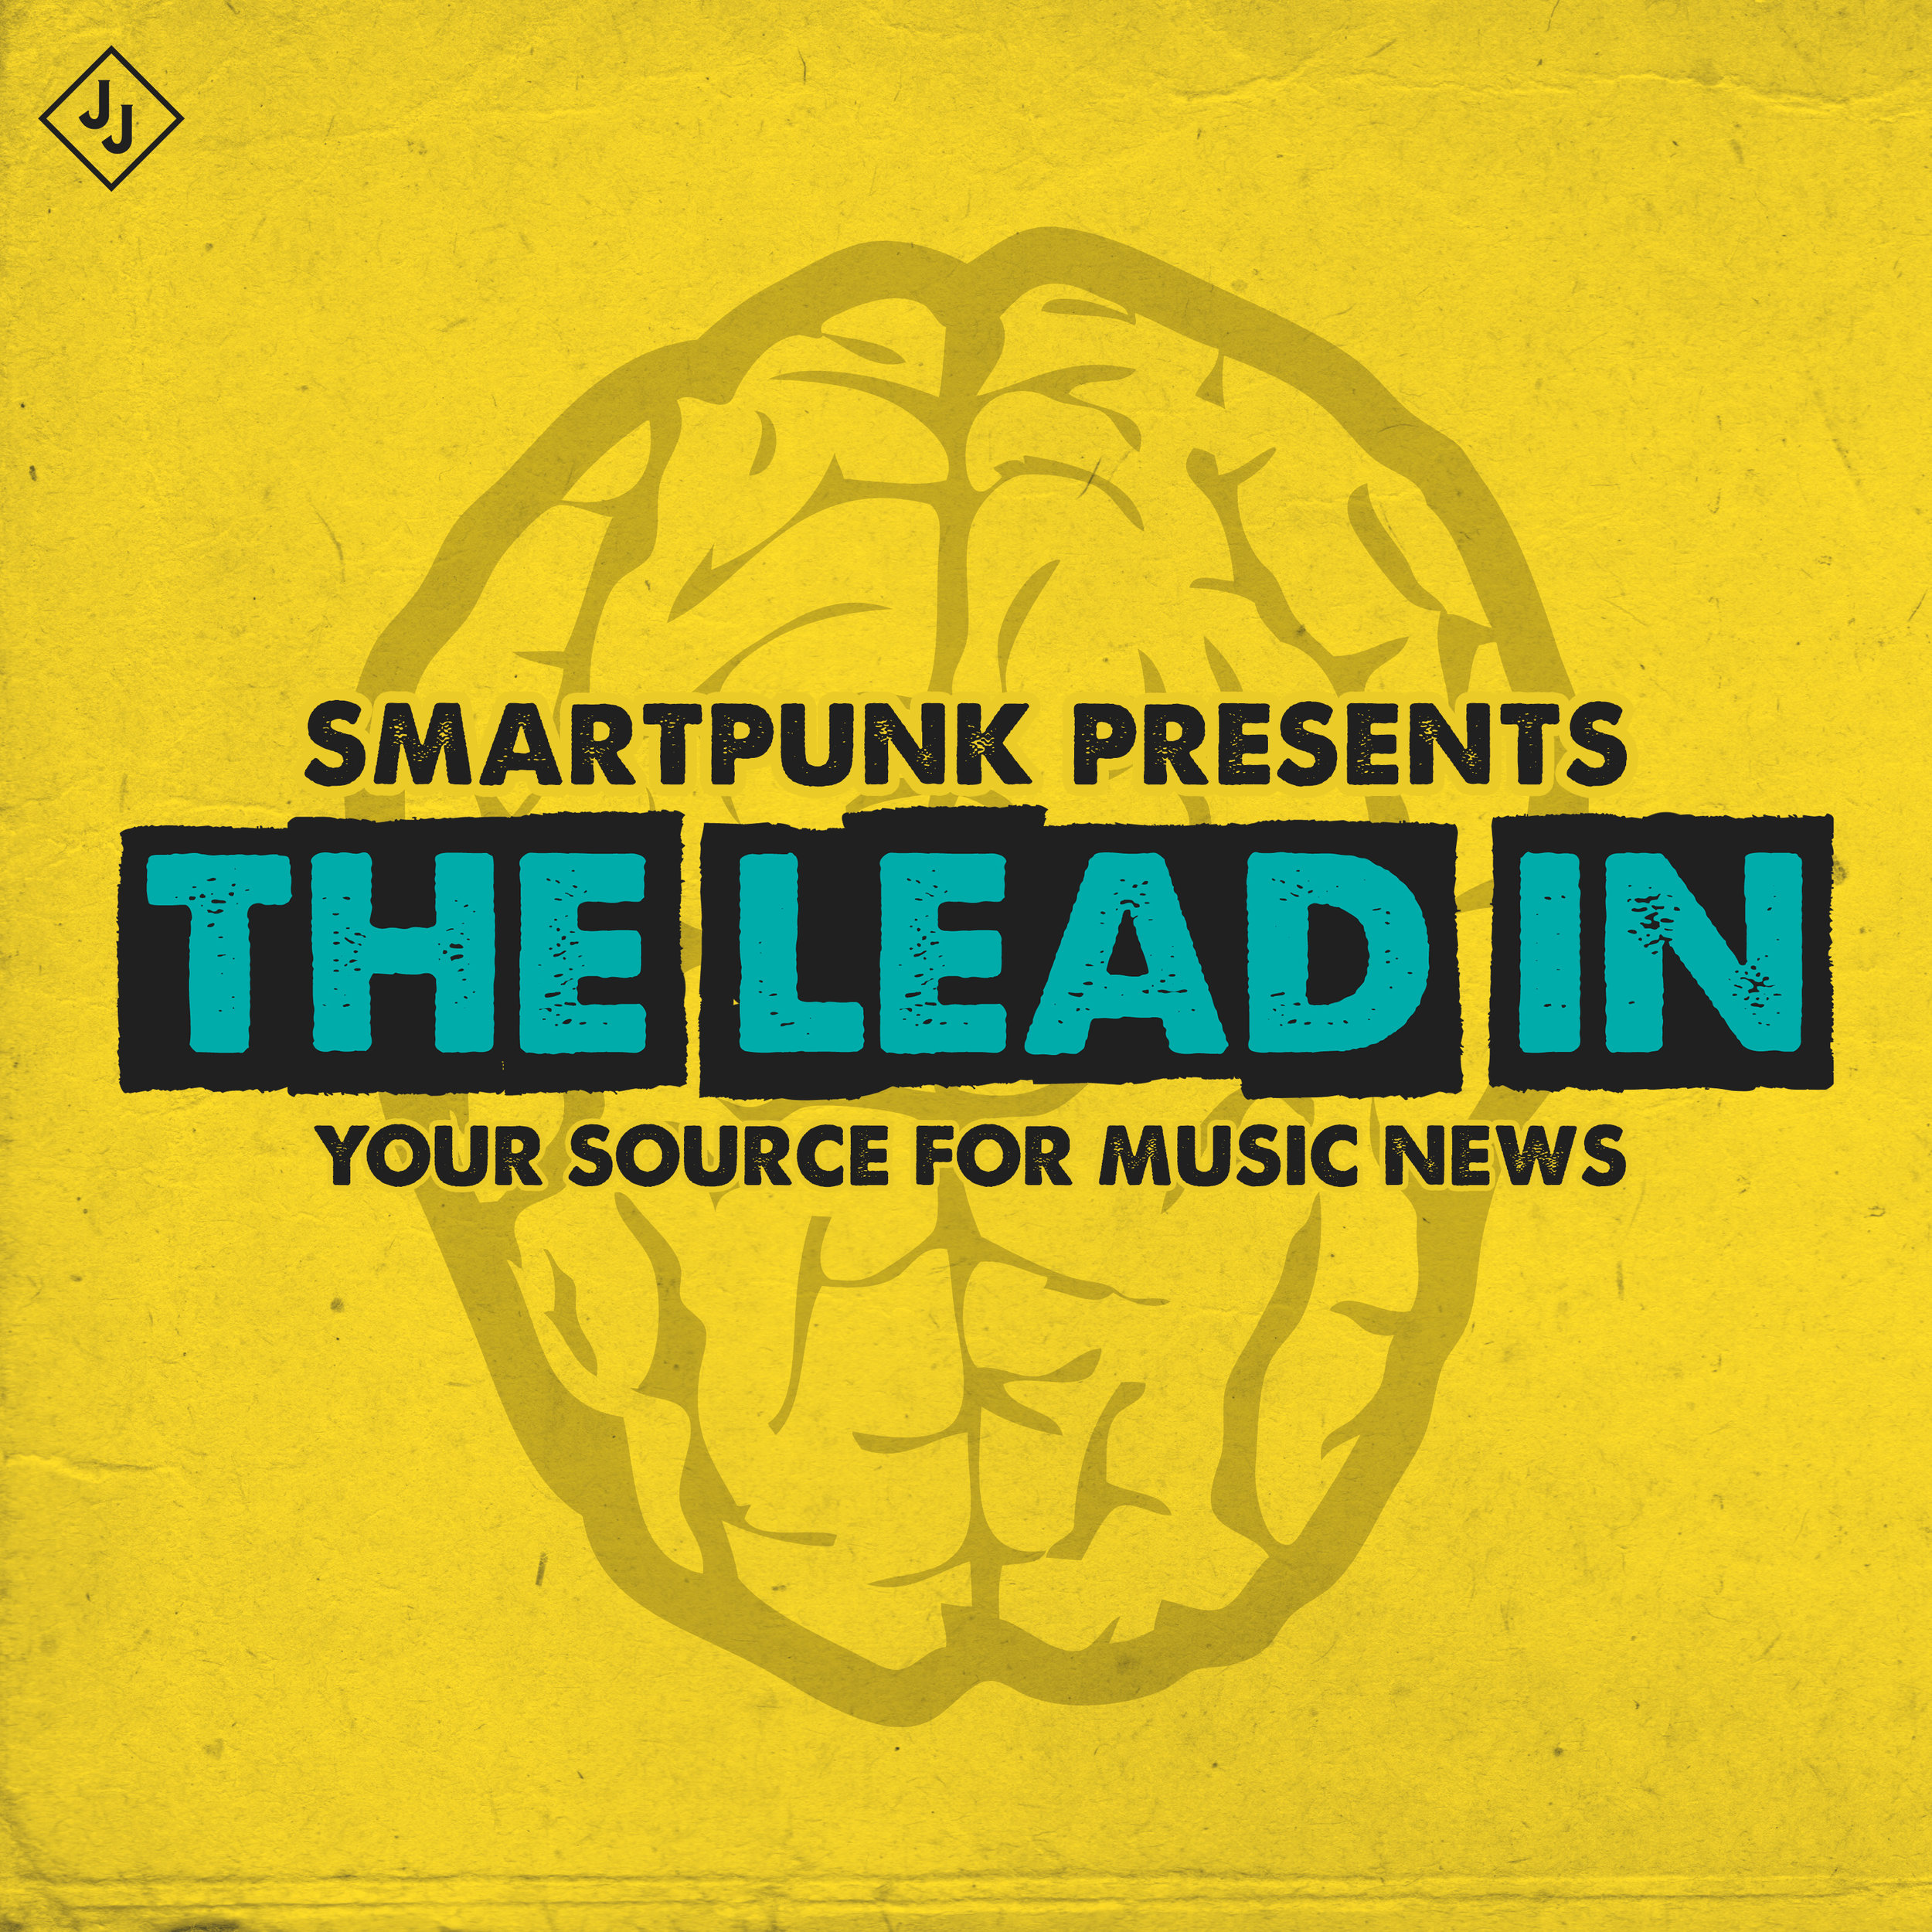 Smartpunk Presents: The Lead In